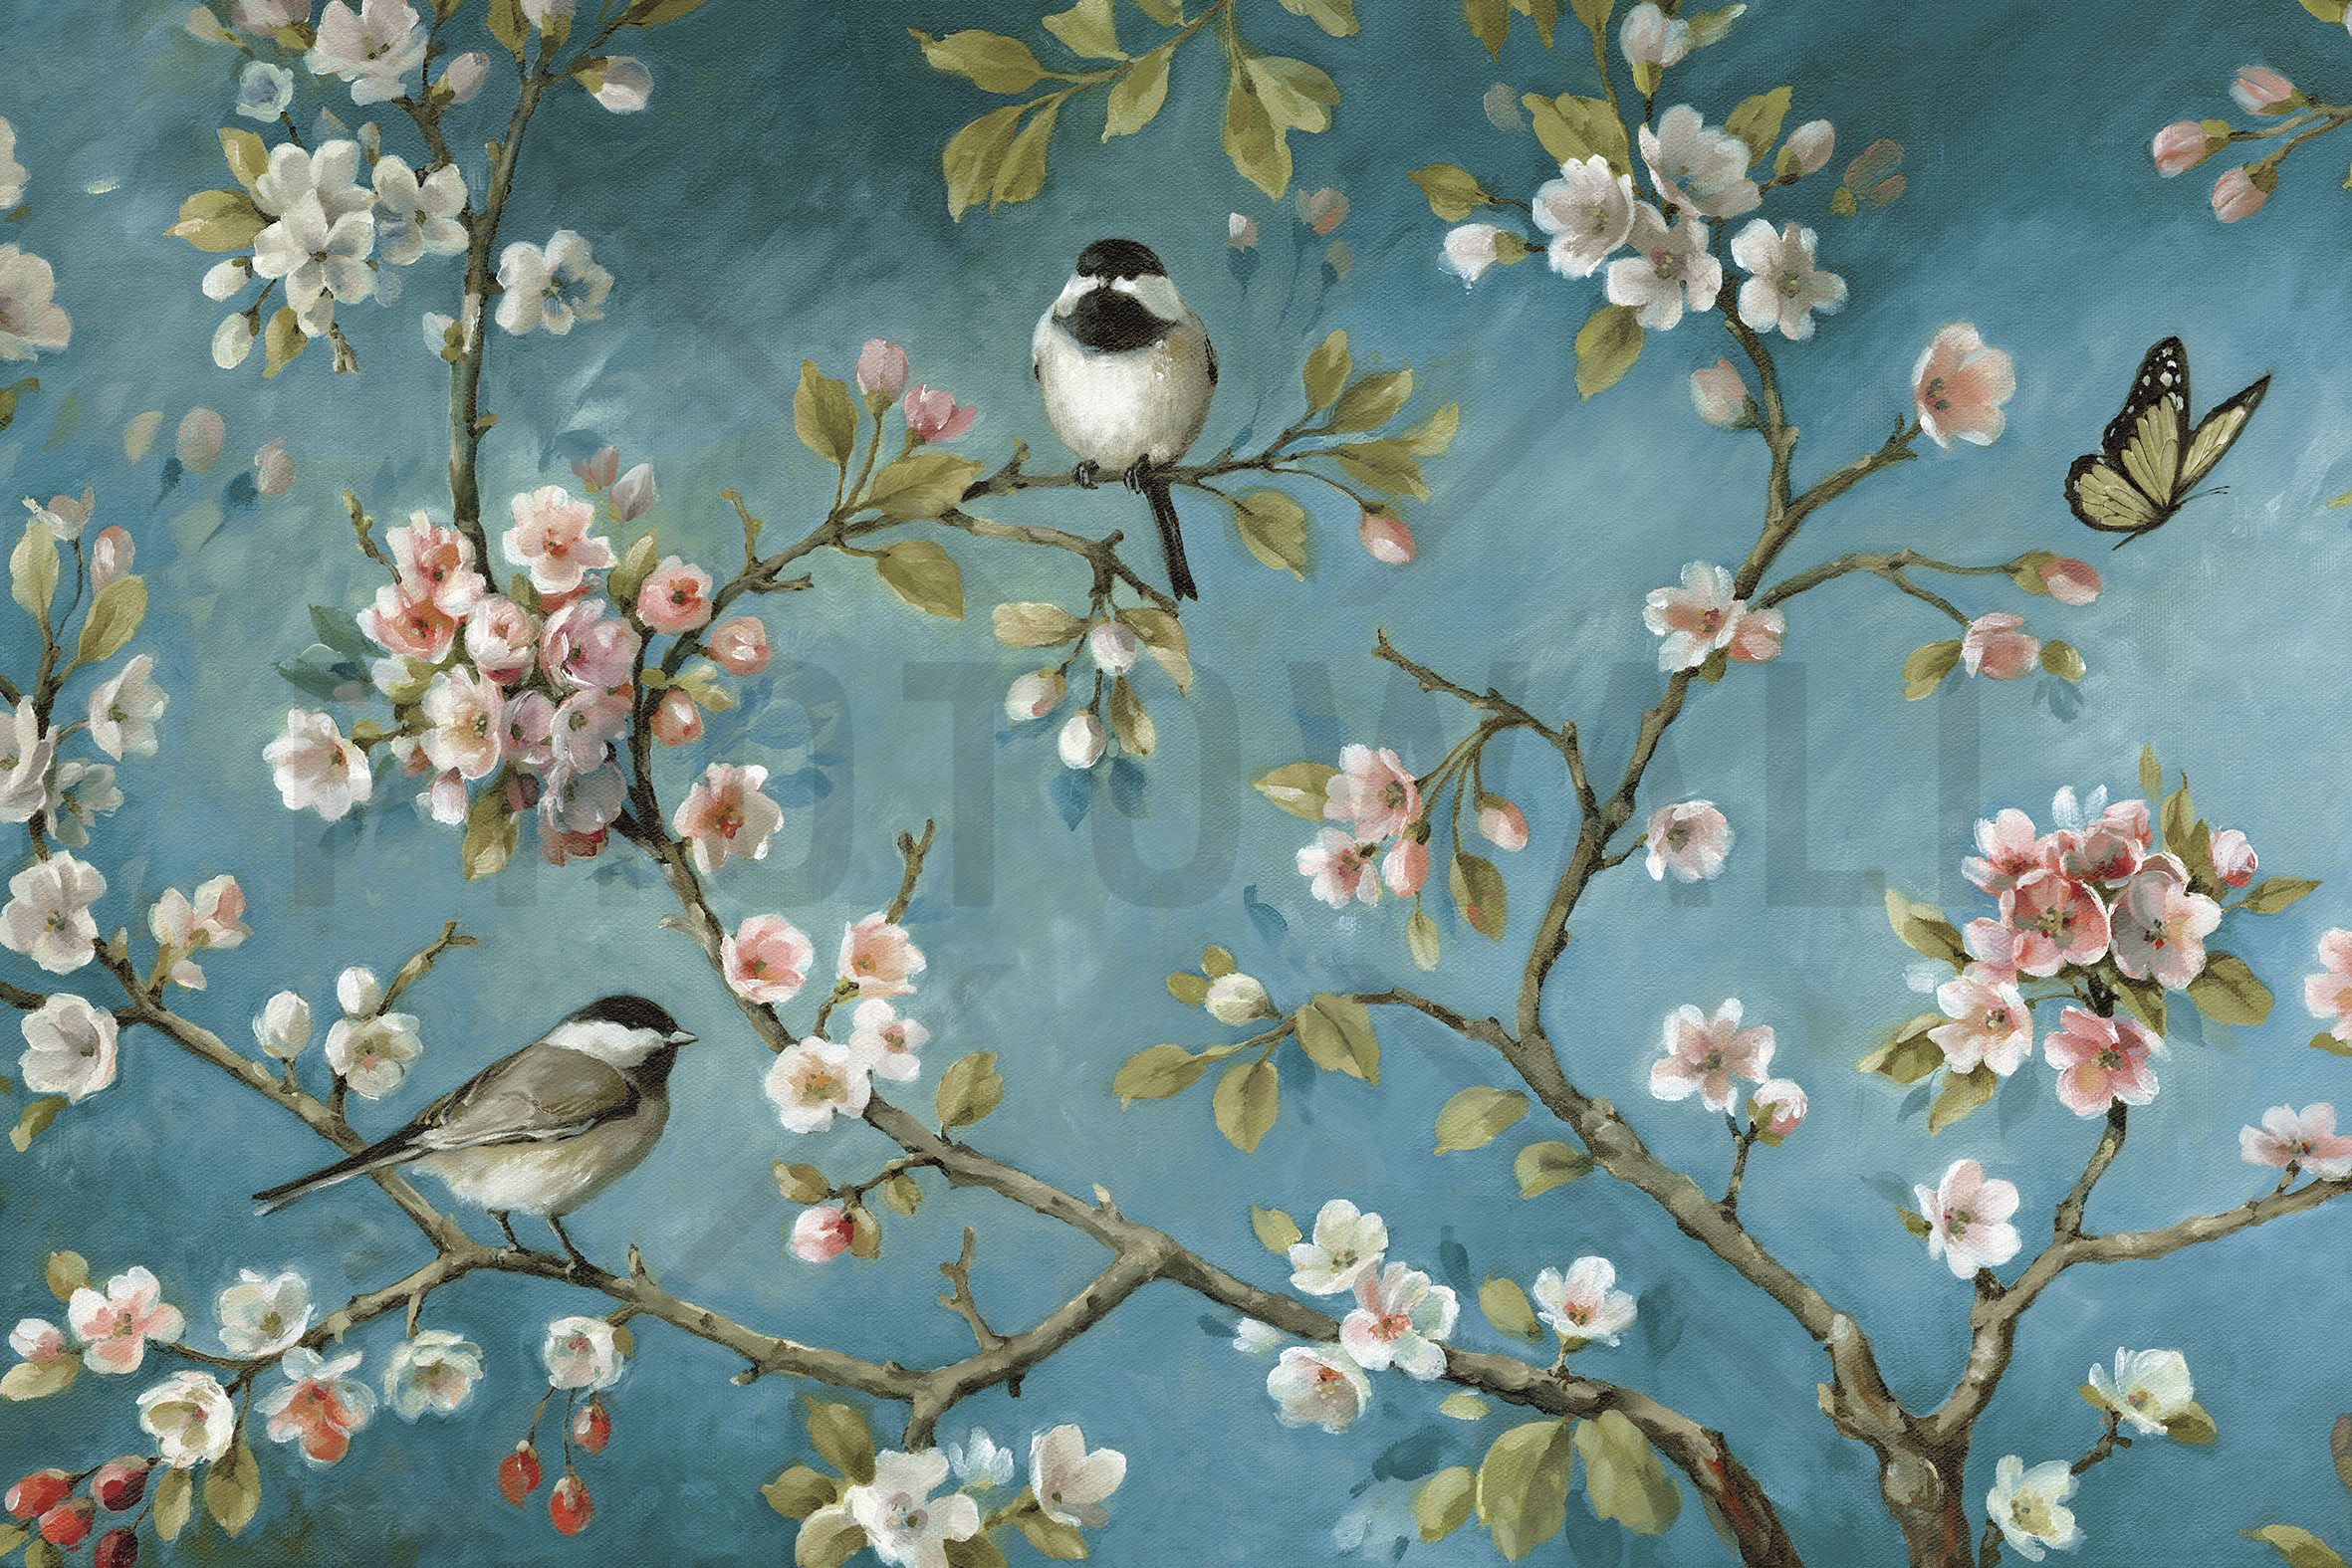 Wallpaper Designs With Birds : Blossom wall mural photo wallpaper photowall